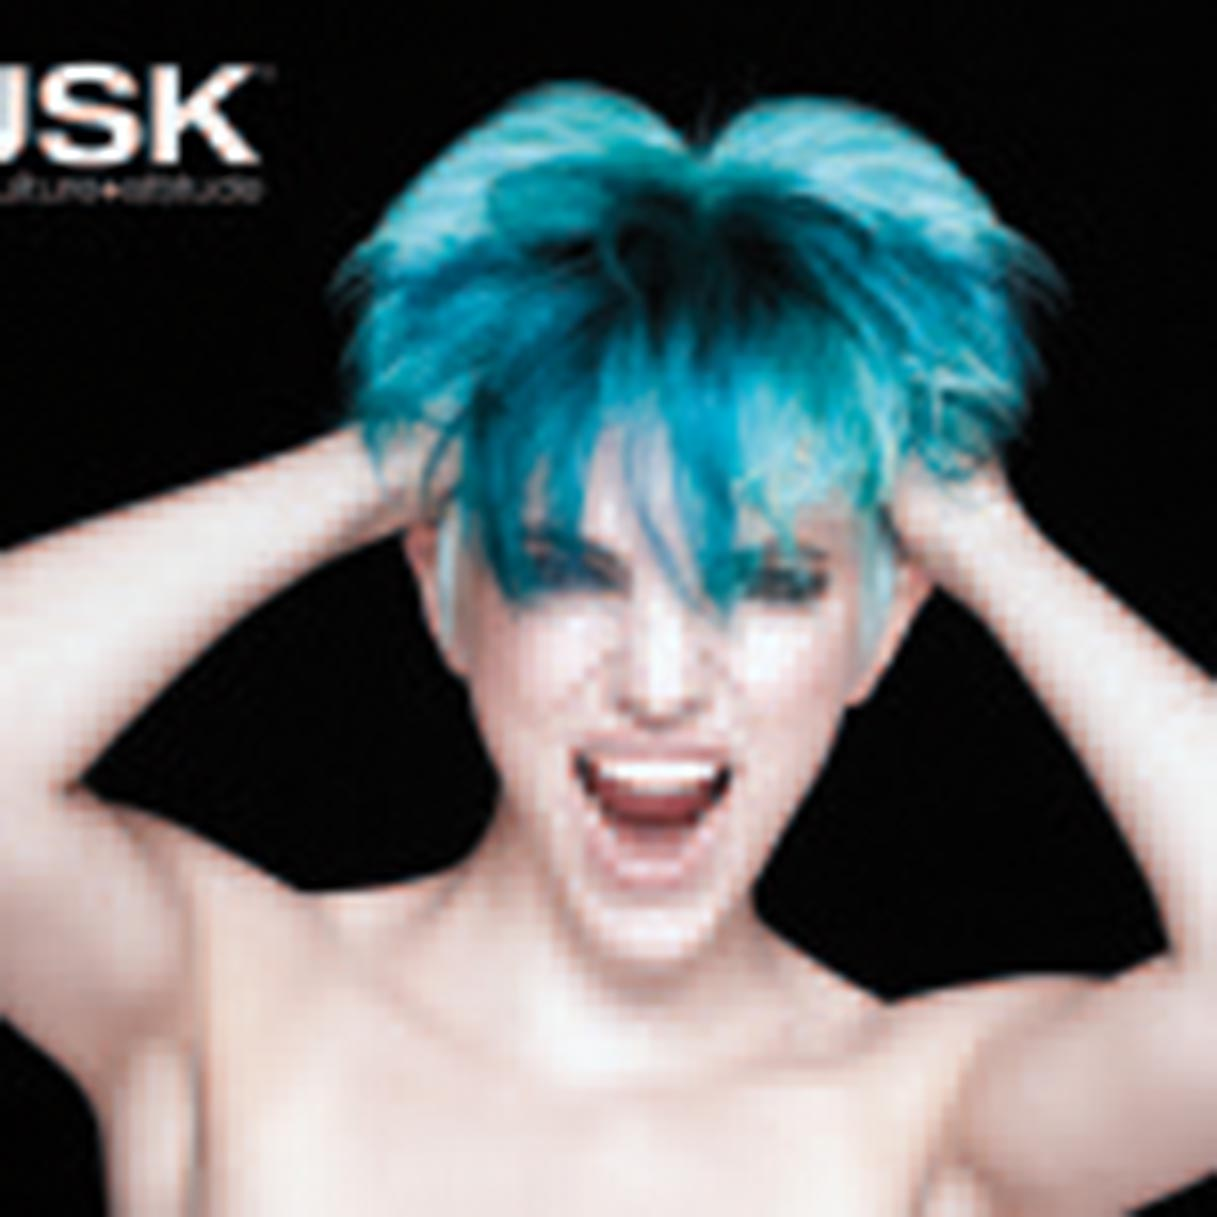 RUSK_DS direct_FASHION TEAL_highres